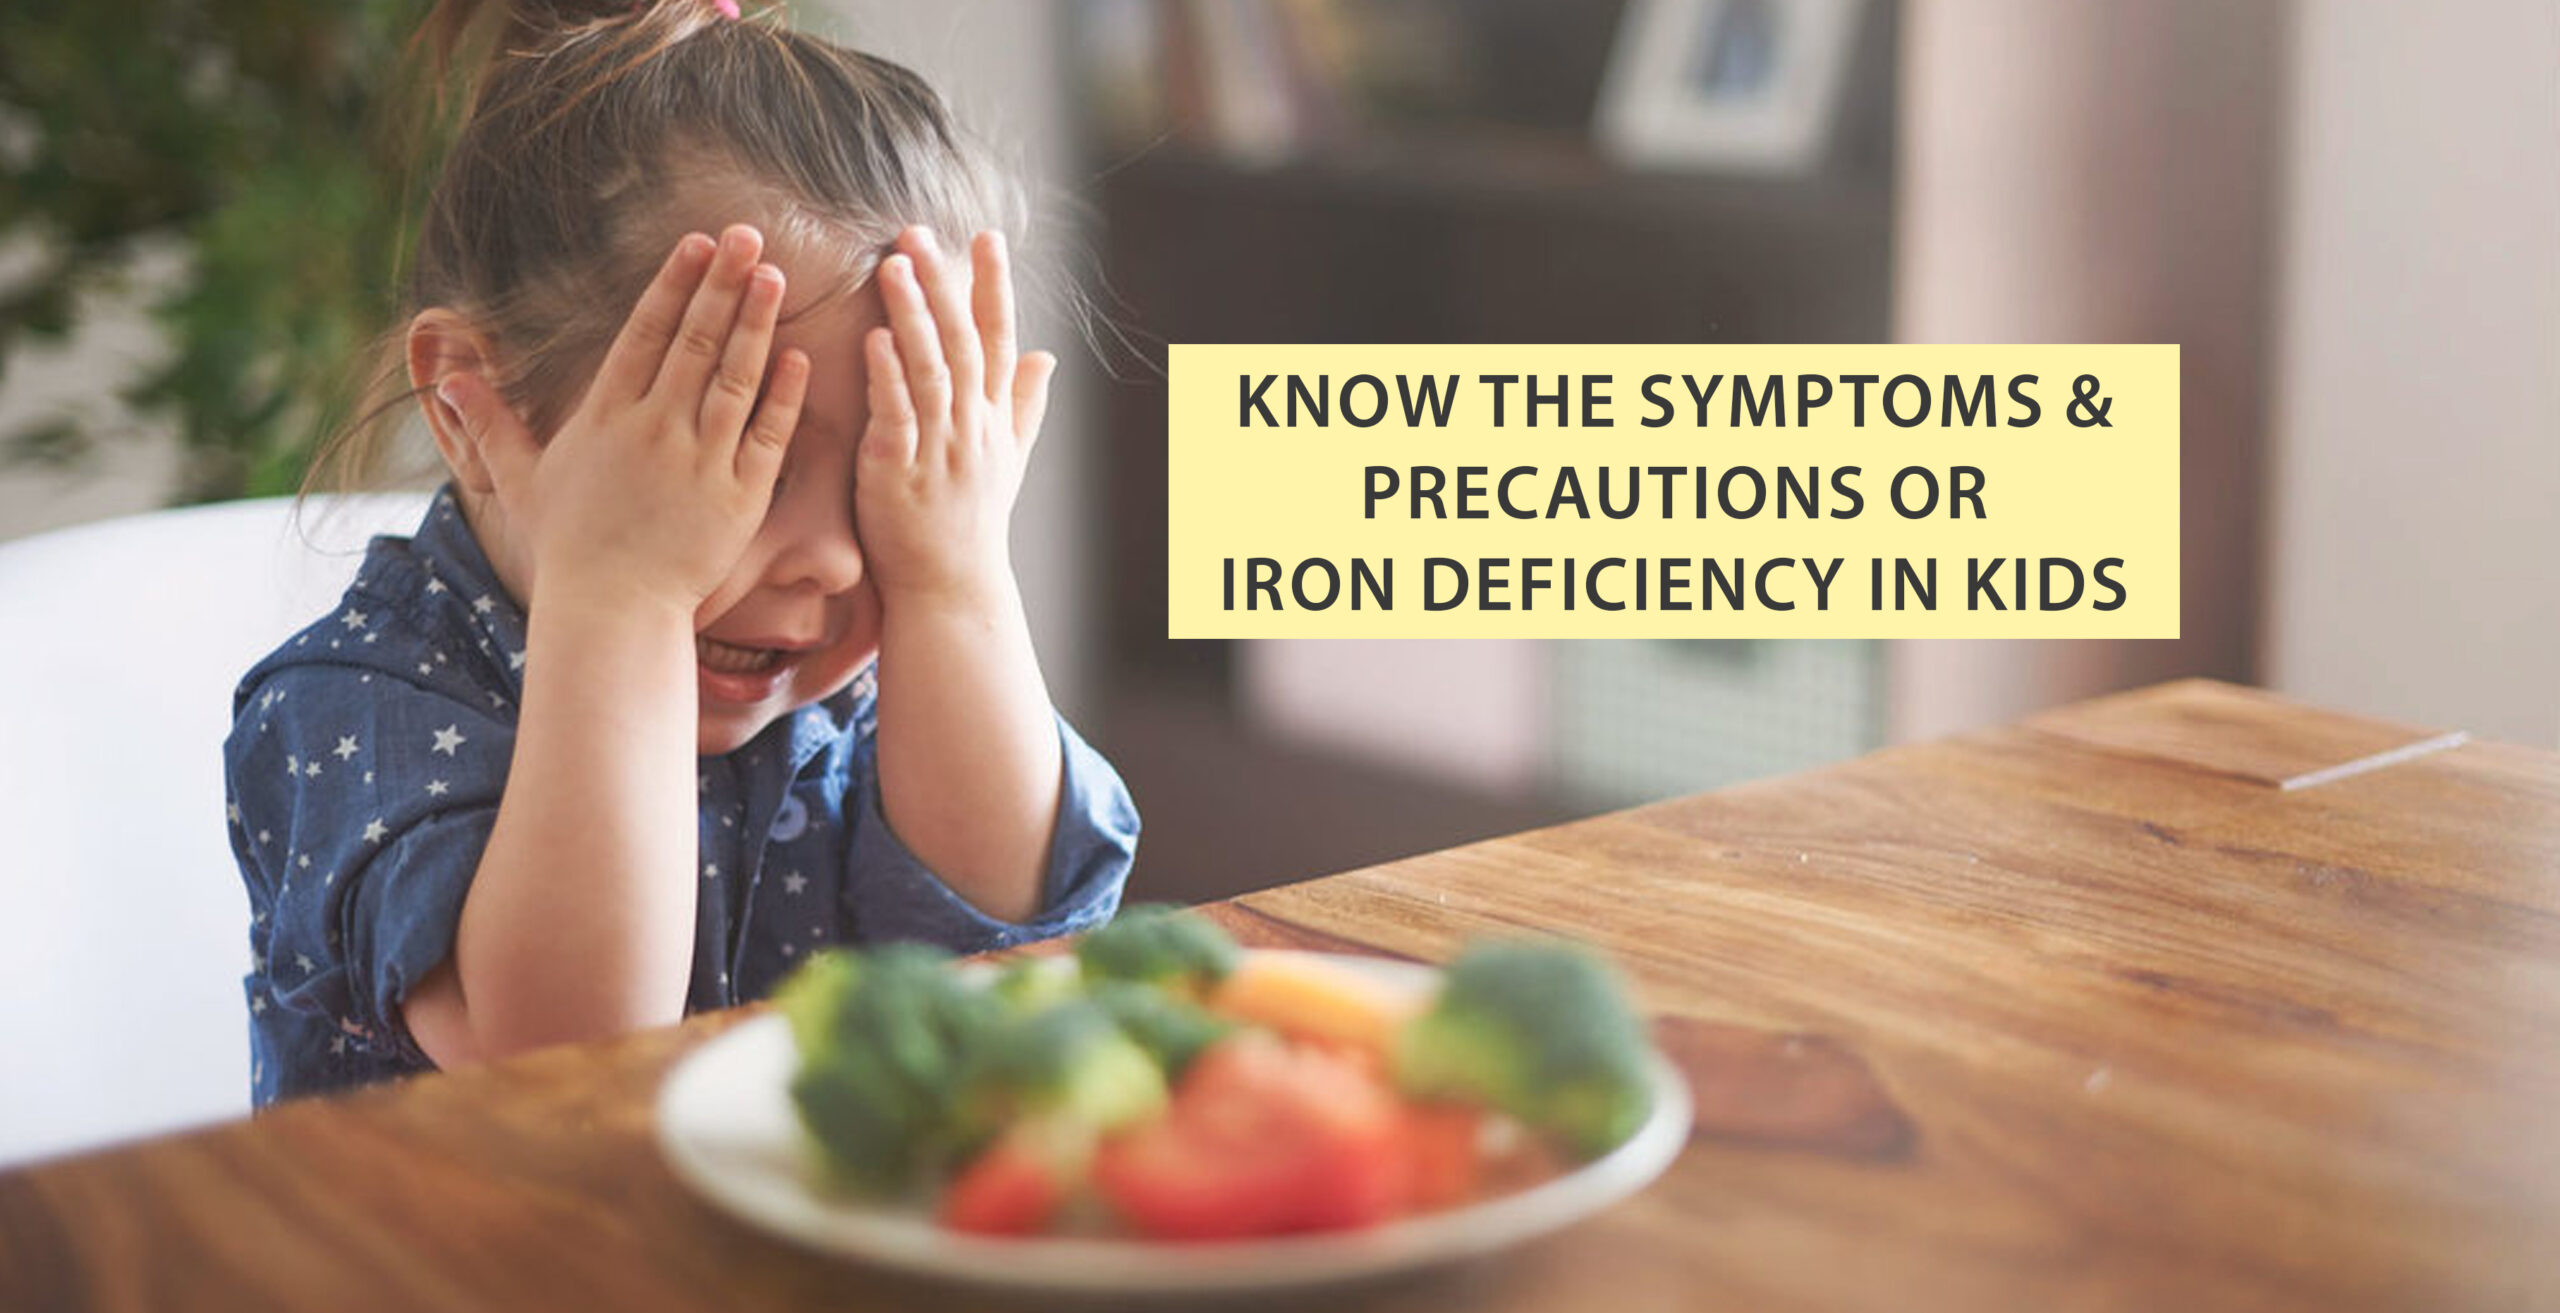 Know-the-Symptoms-and-precautions-for-Iron-Deficiency-in-Kids-scaled